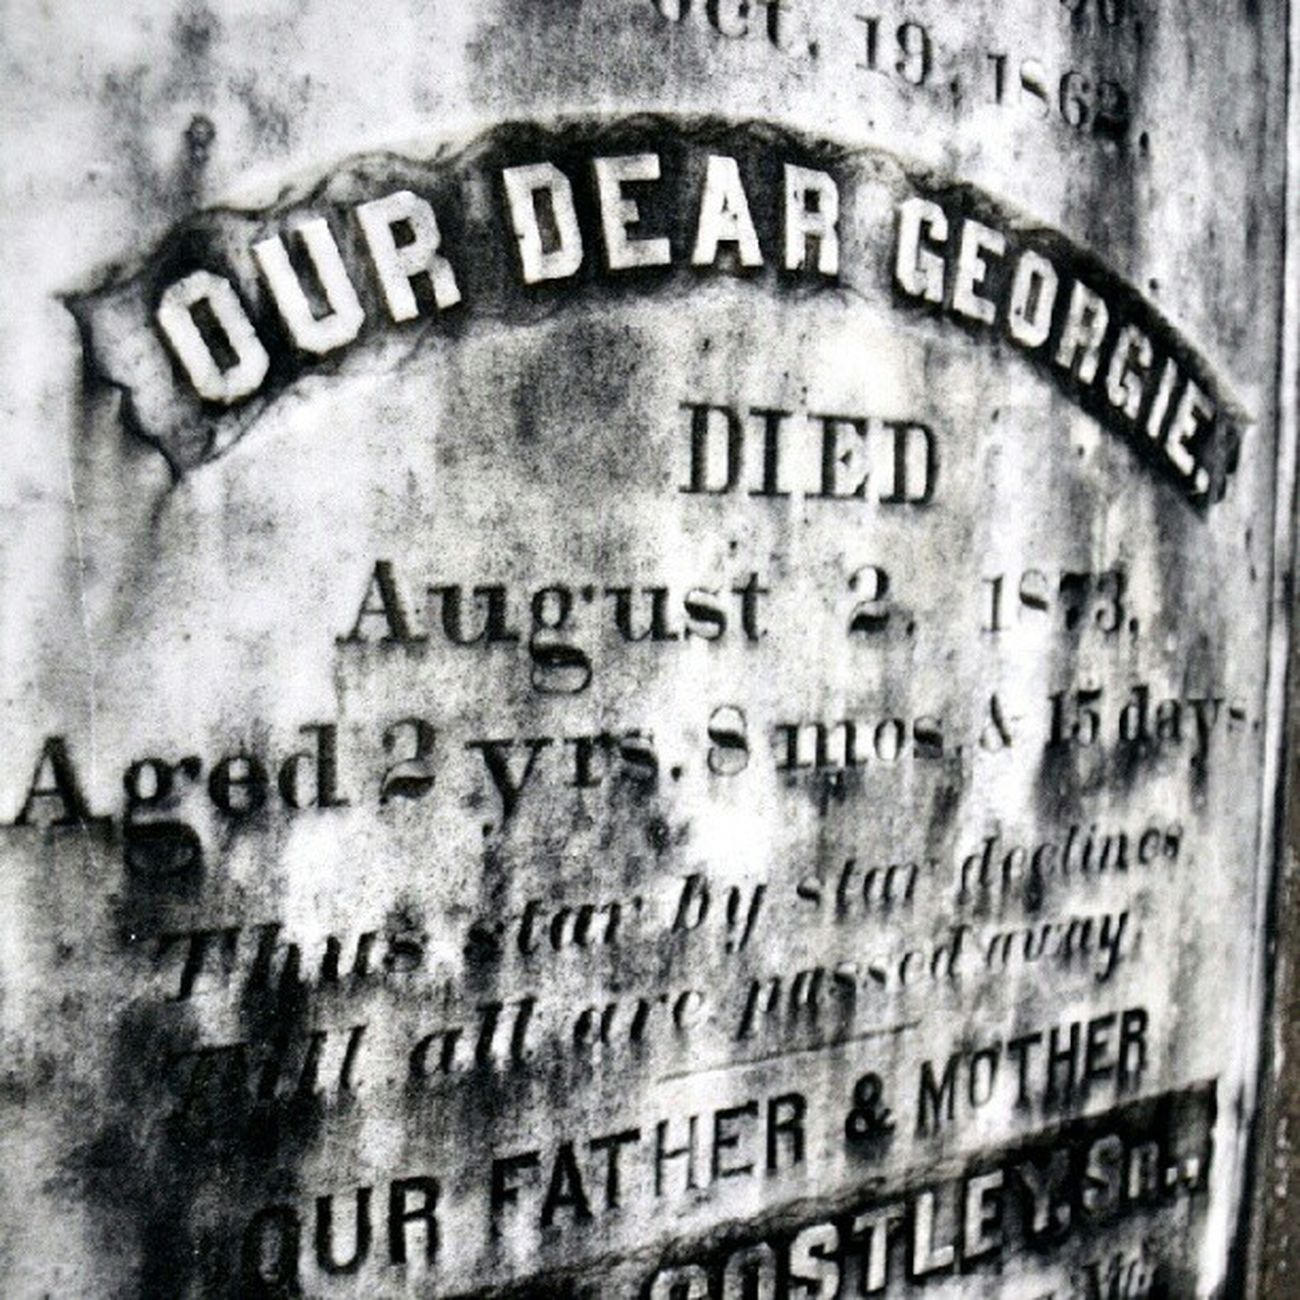 Our Dear Georgie. #Nola #neworleans #cemetery #grave #George #Georgie #love #Instagram #saveourcemeteries #picoftheday #pictureoftheday #tombstone Pictureoftheday Neworleans Saveourcemeteries Georgie Love Cemetery George Instagram Tombstone Picoftheday Grave NOLA